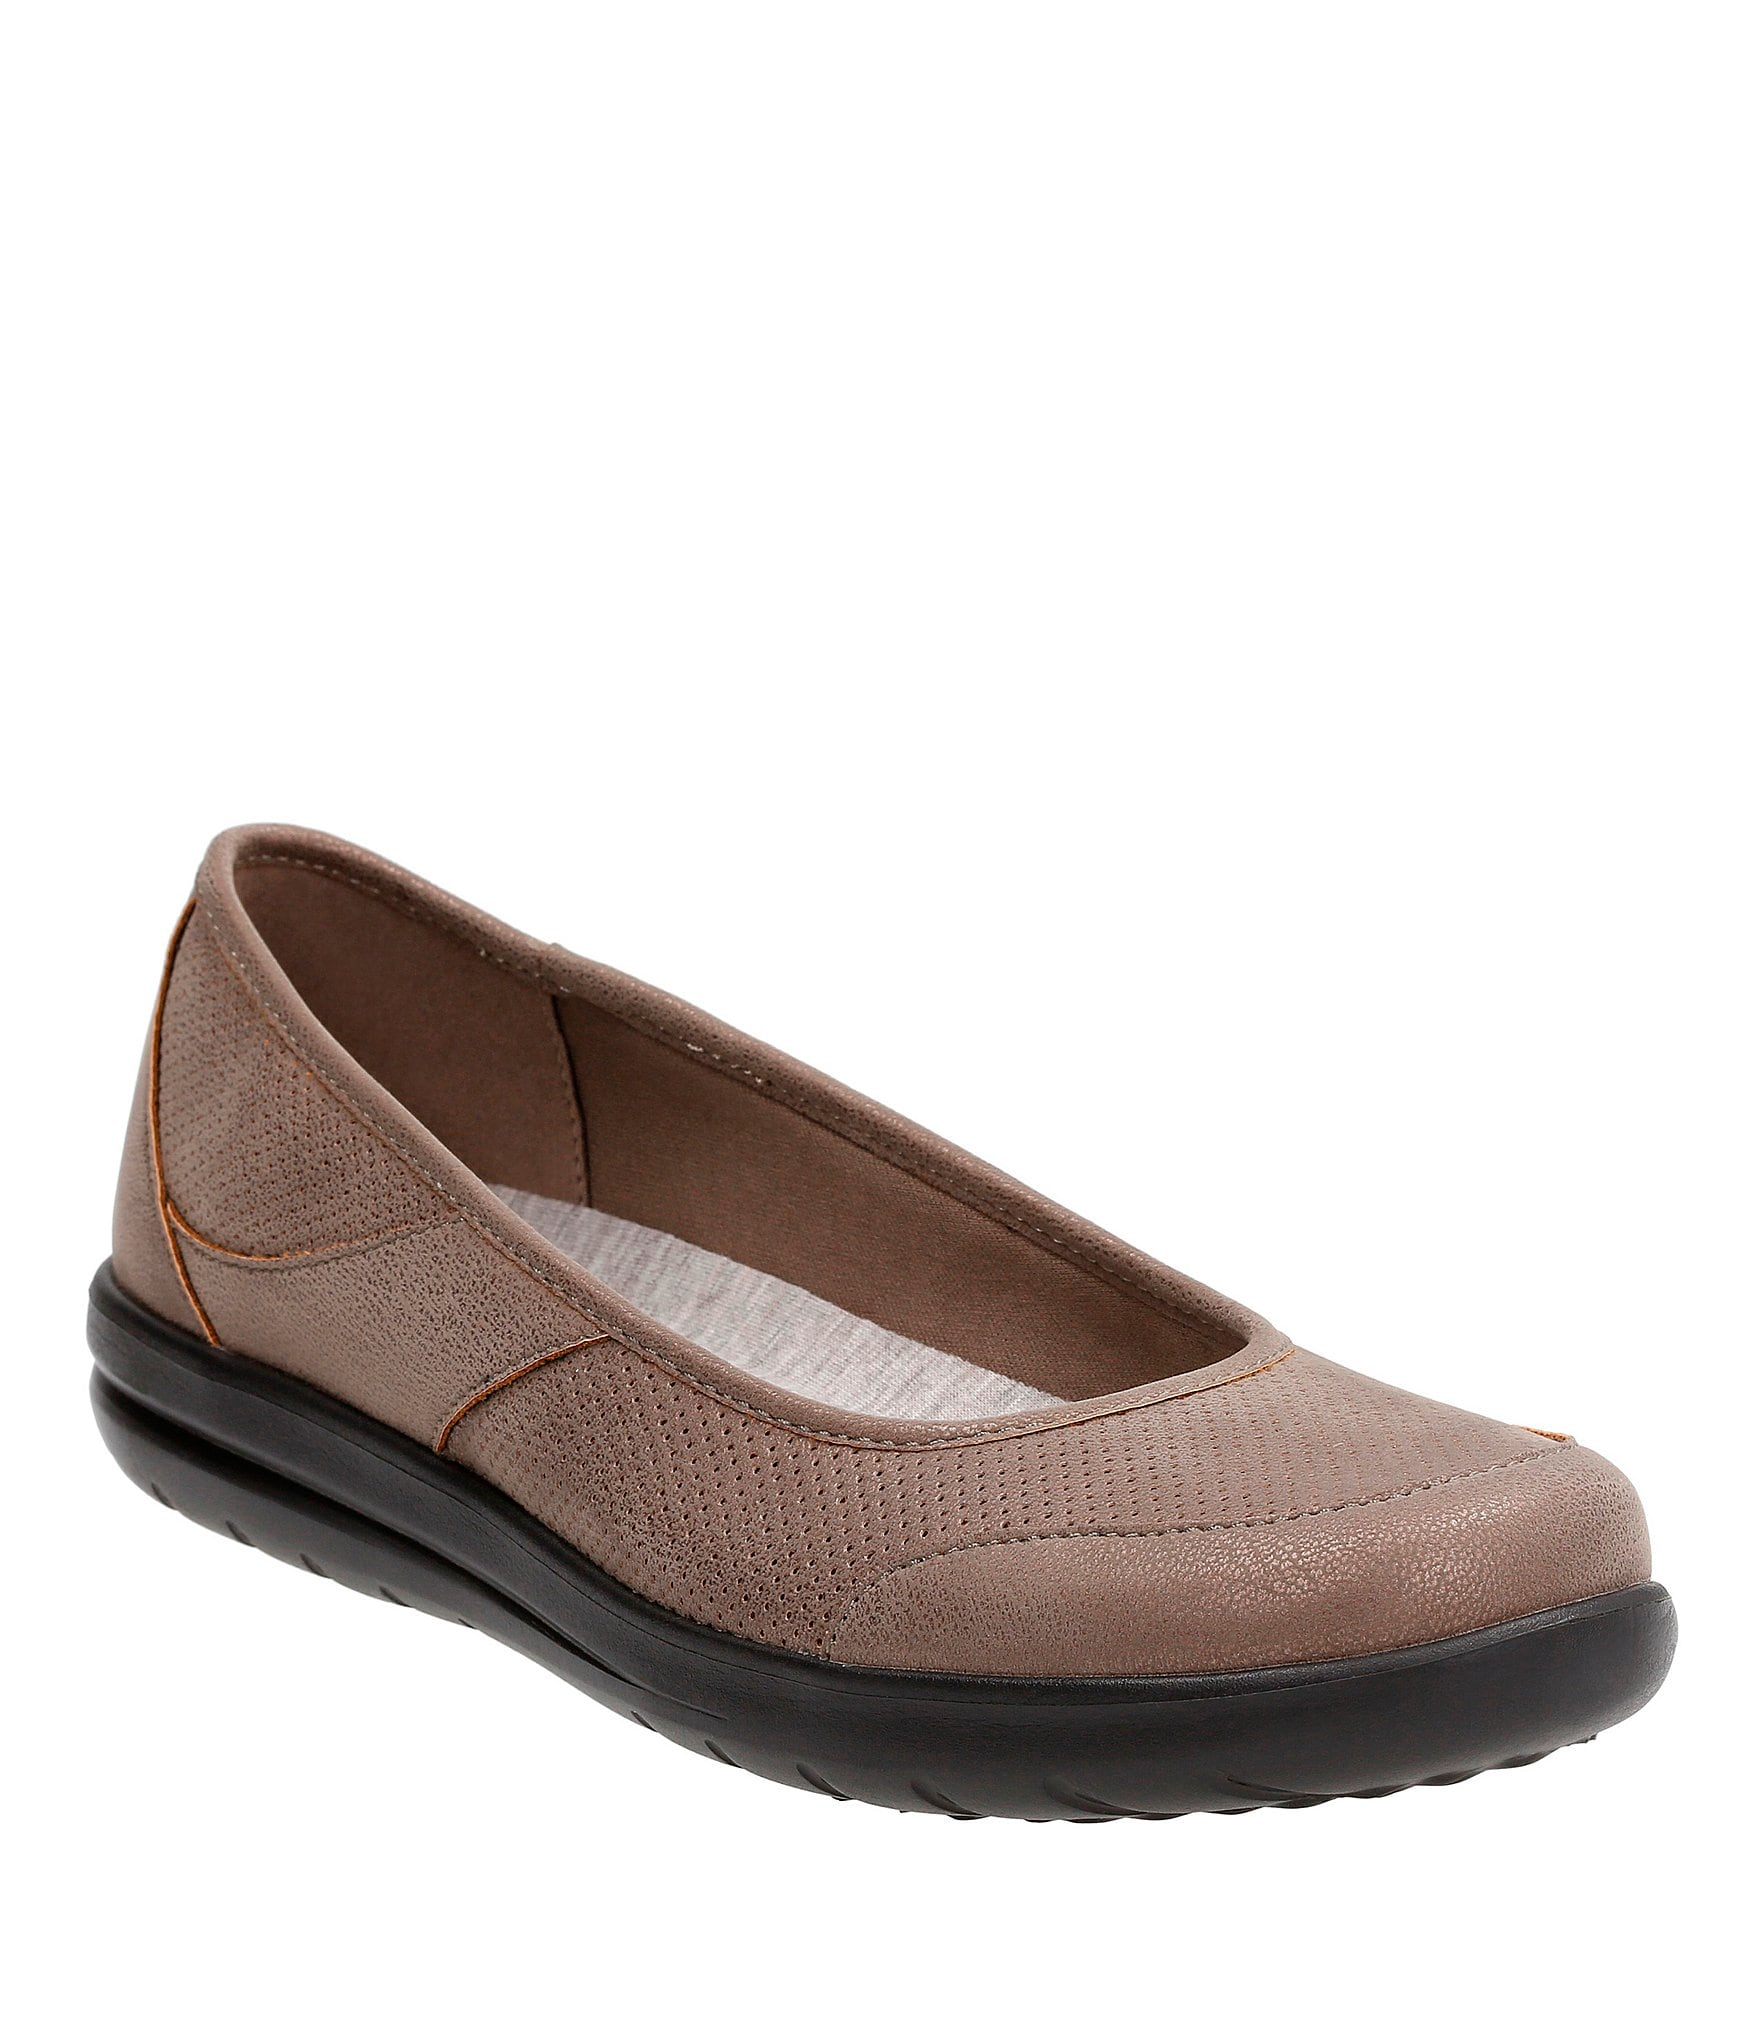 Clarks Ortho Shoes